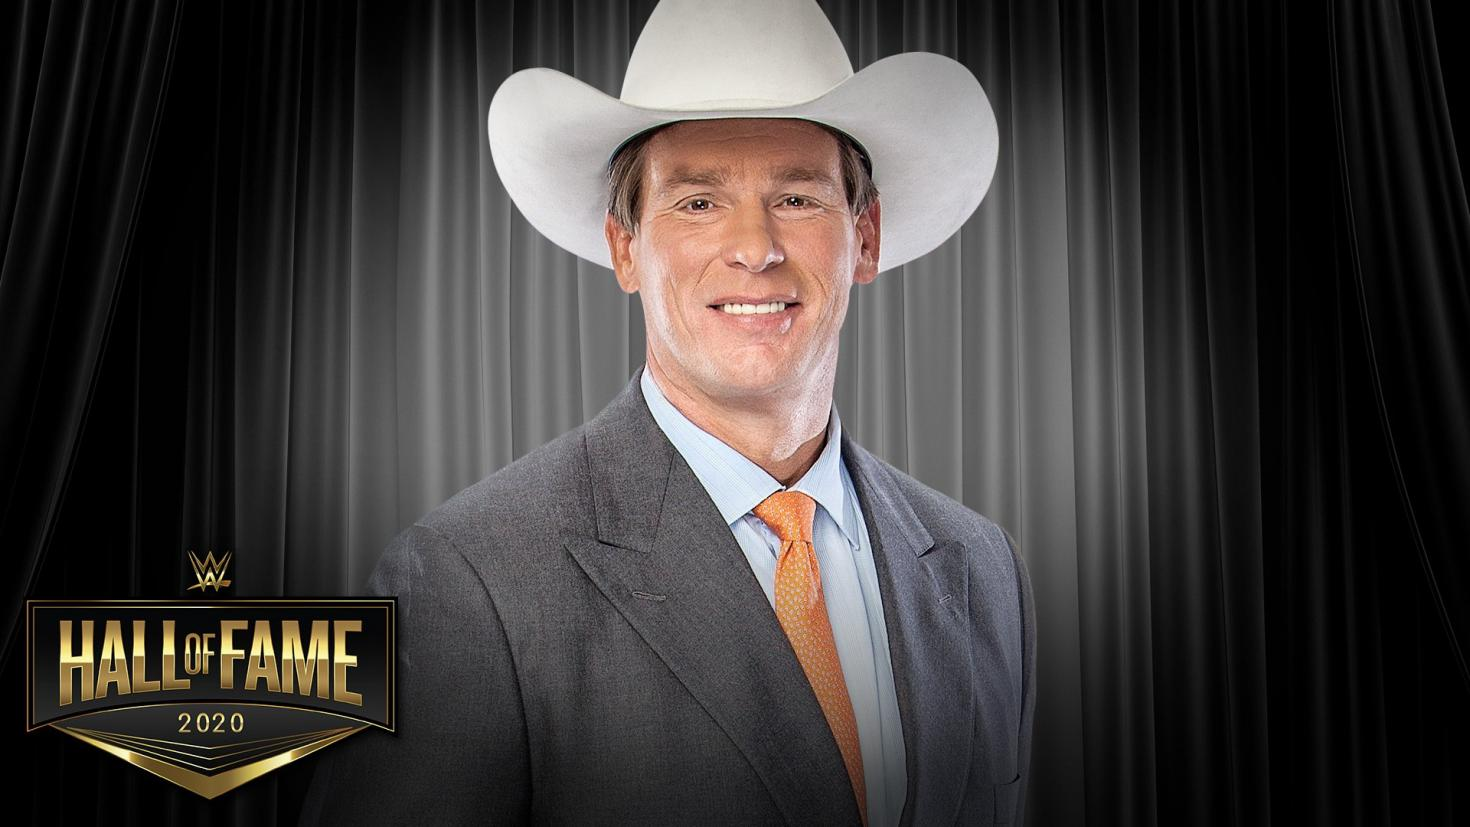 JBL to be inducted in WWE Hall of Fame